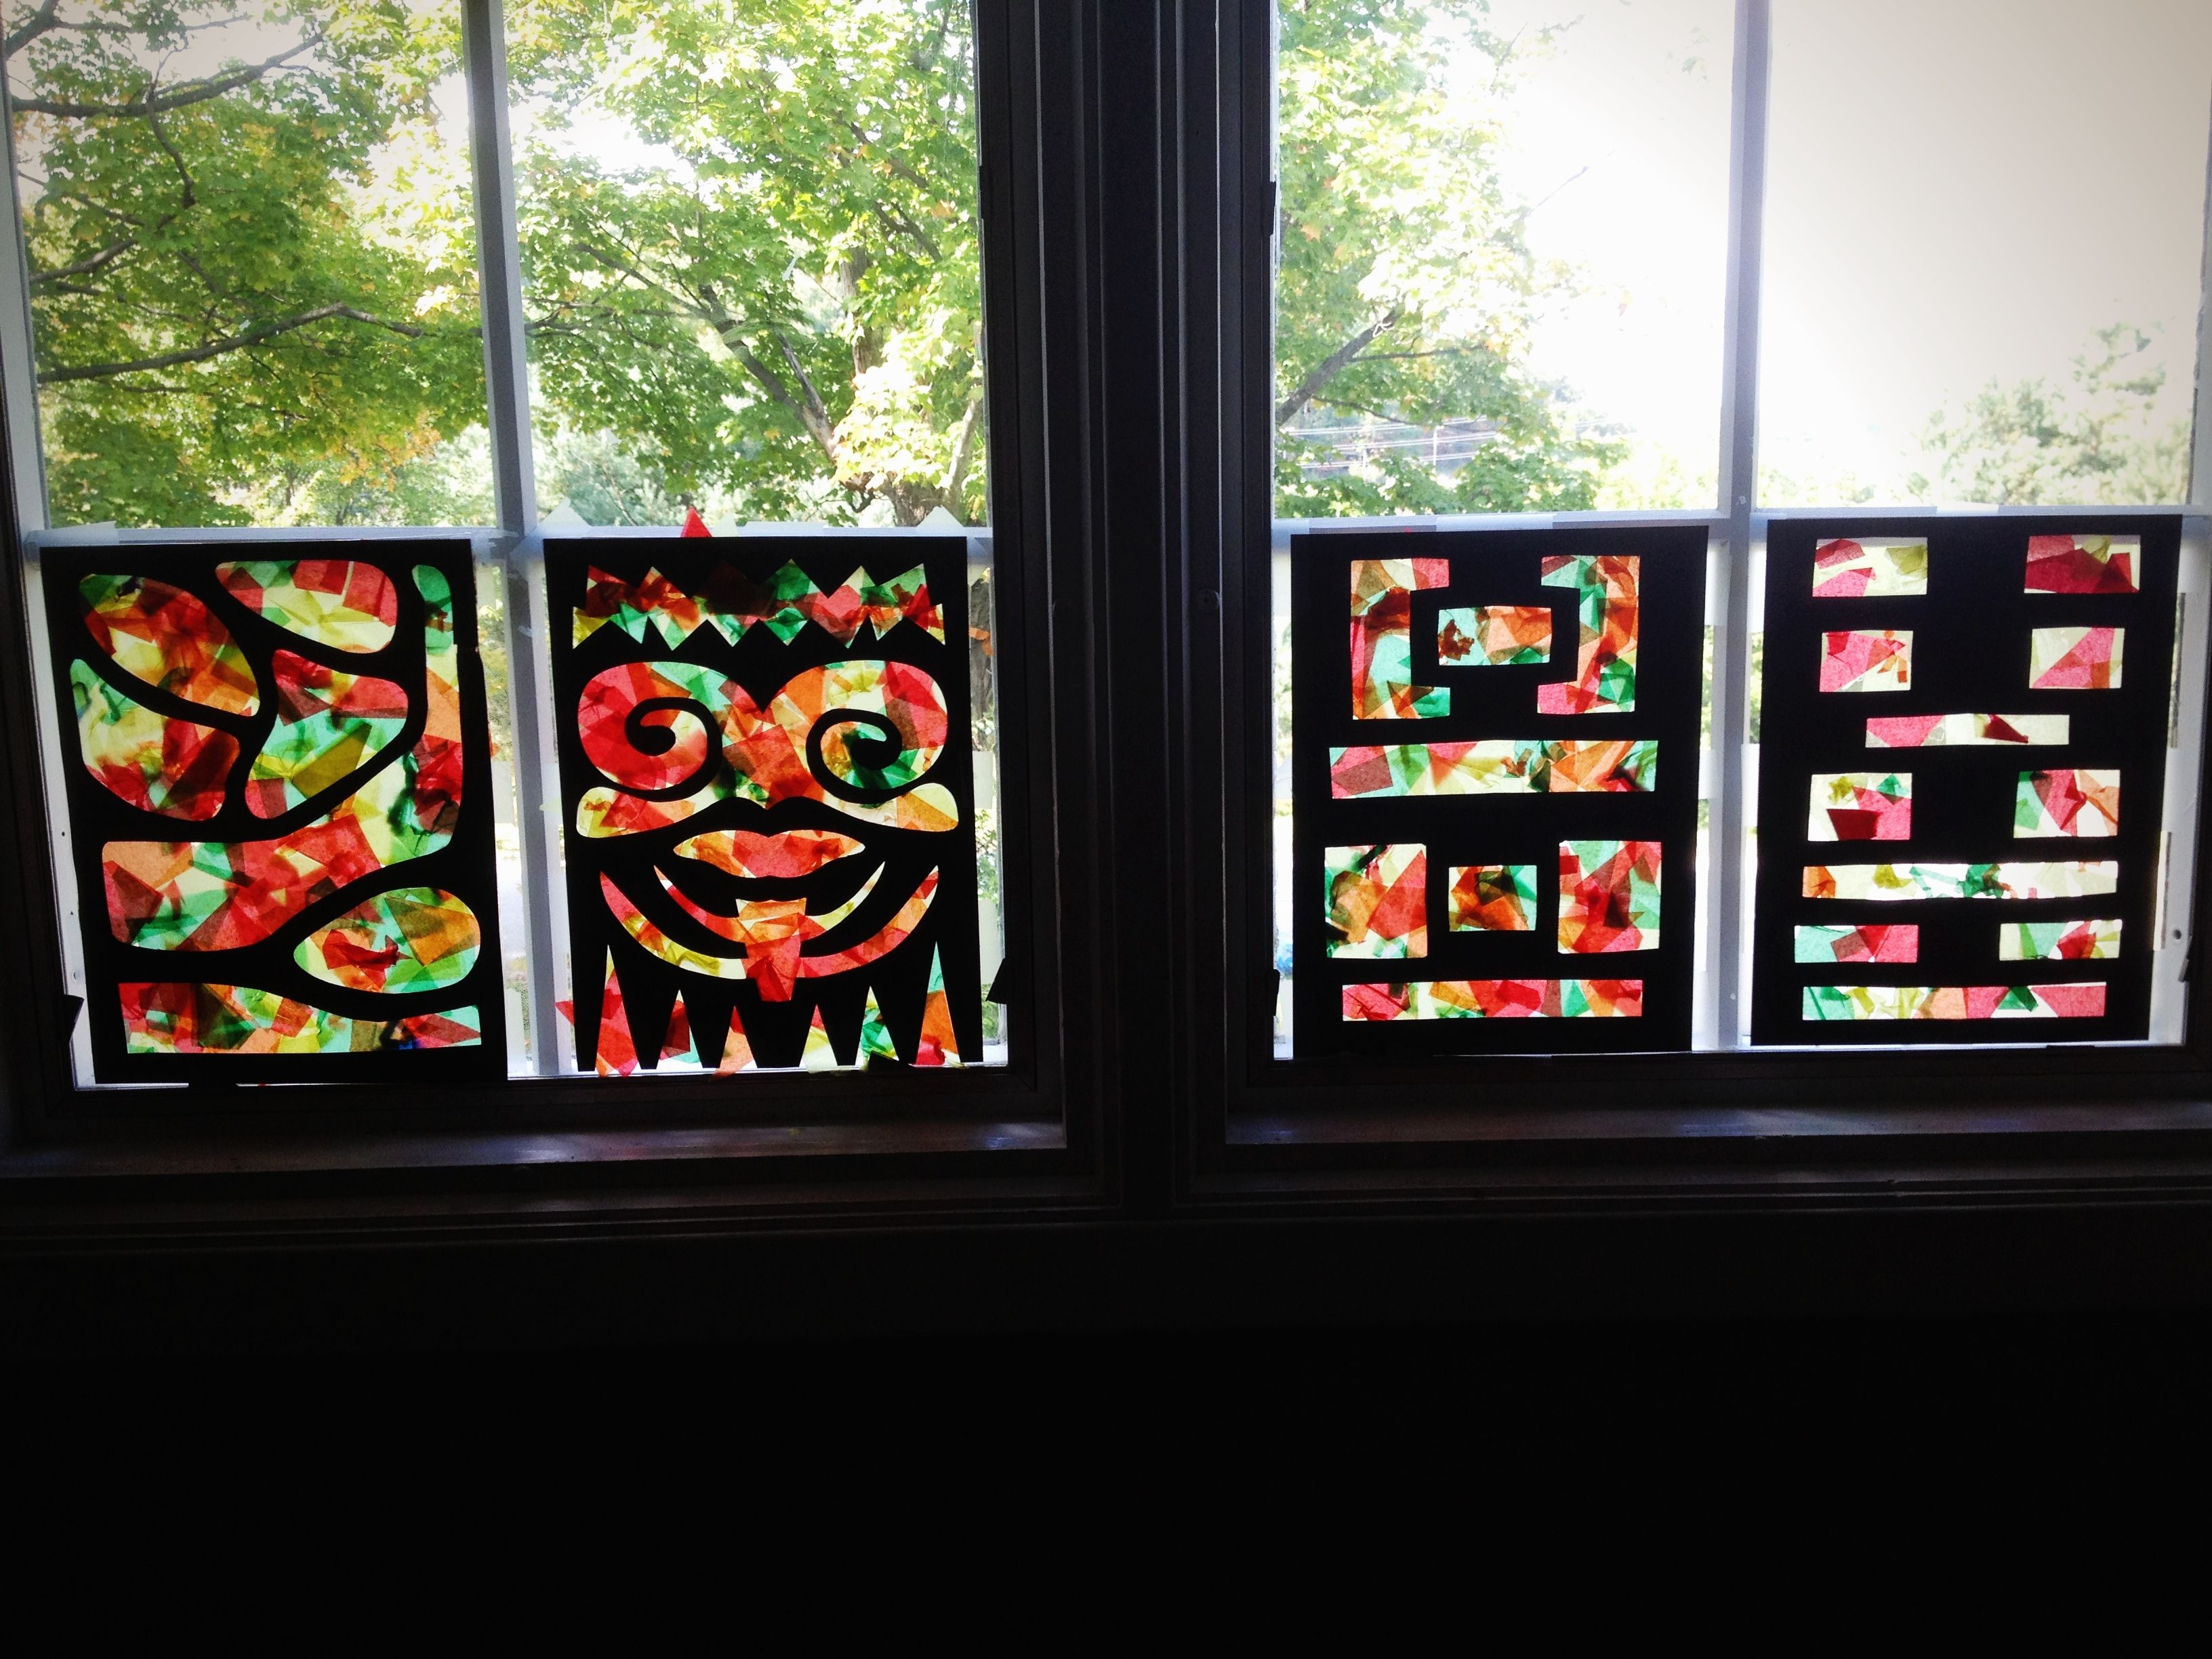 Tissue paper faux stained glass window craft for preschool for Stained glass window craft with tissue paper